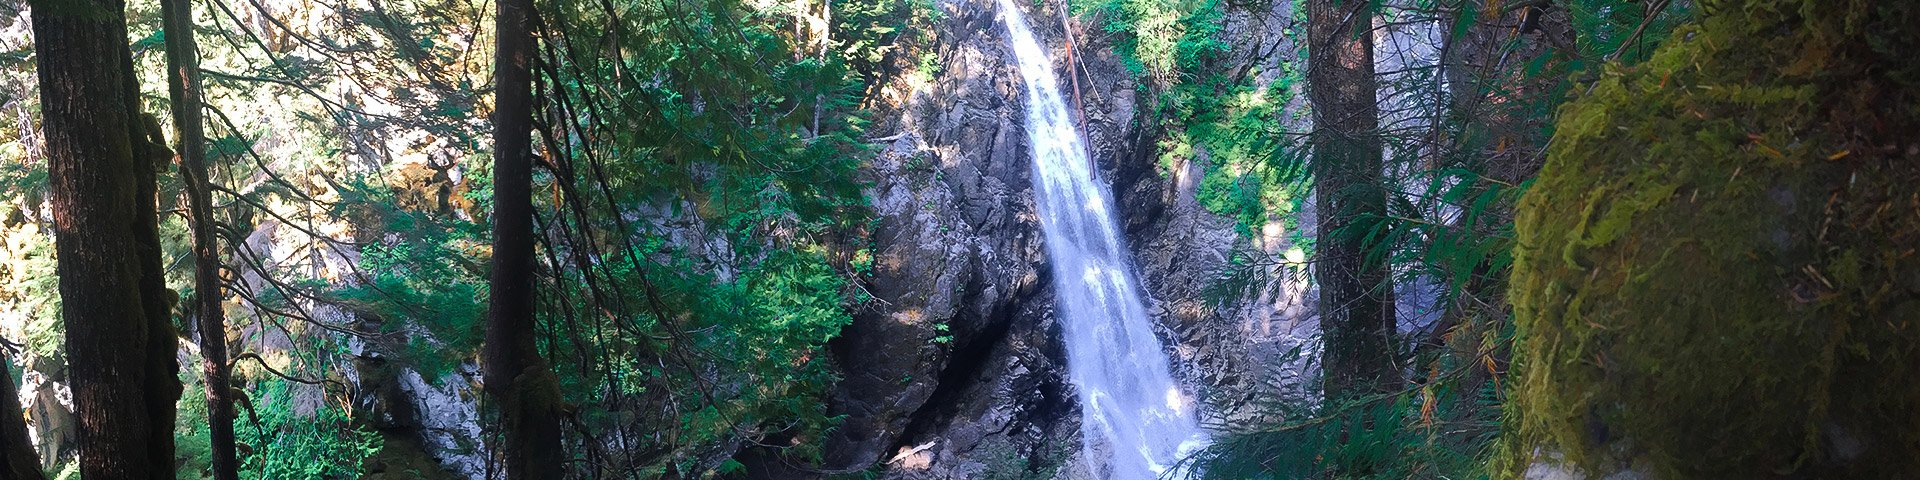 Panorama of the Upper Myra Falls hike in Strathcona Provincial Park, Vancouver Island